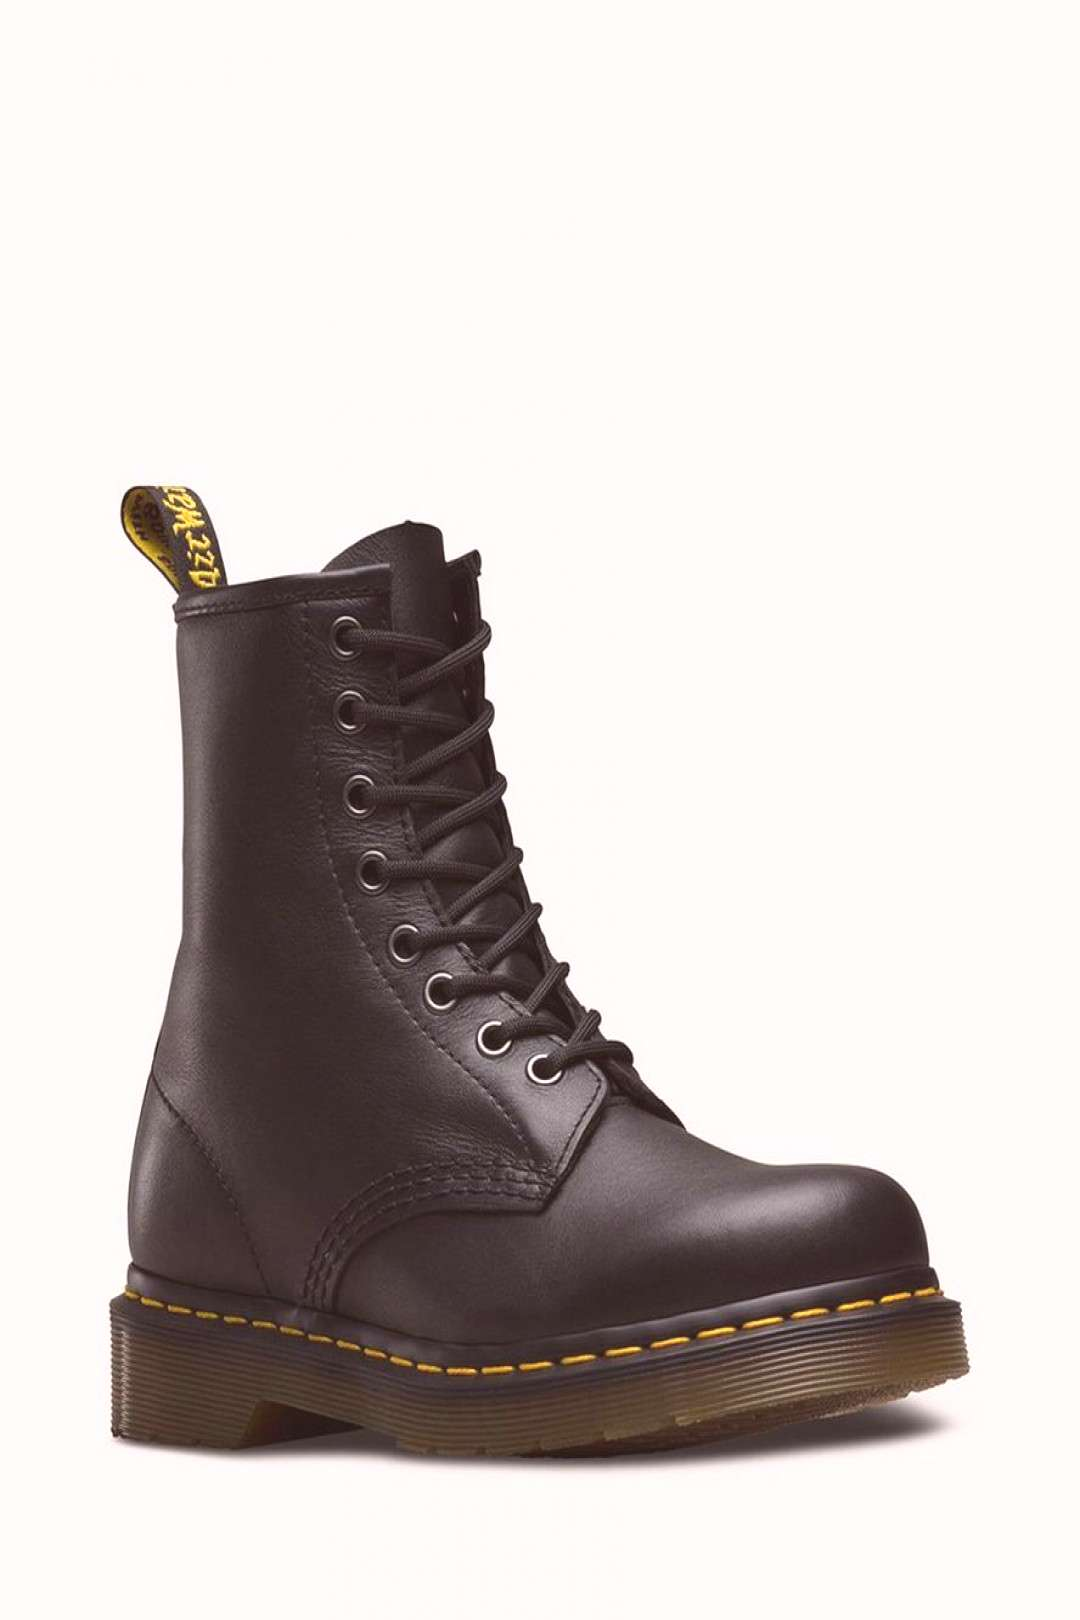 1460 NAPPA | Womens Boots, Shoes & Sandals | Dr. Martens Official